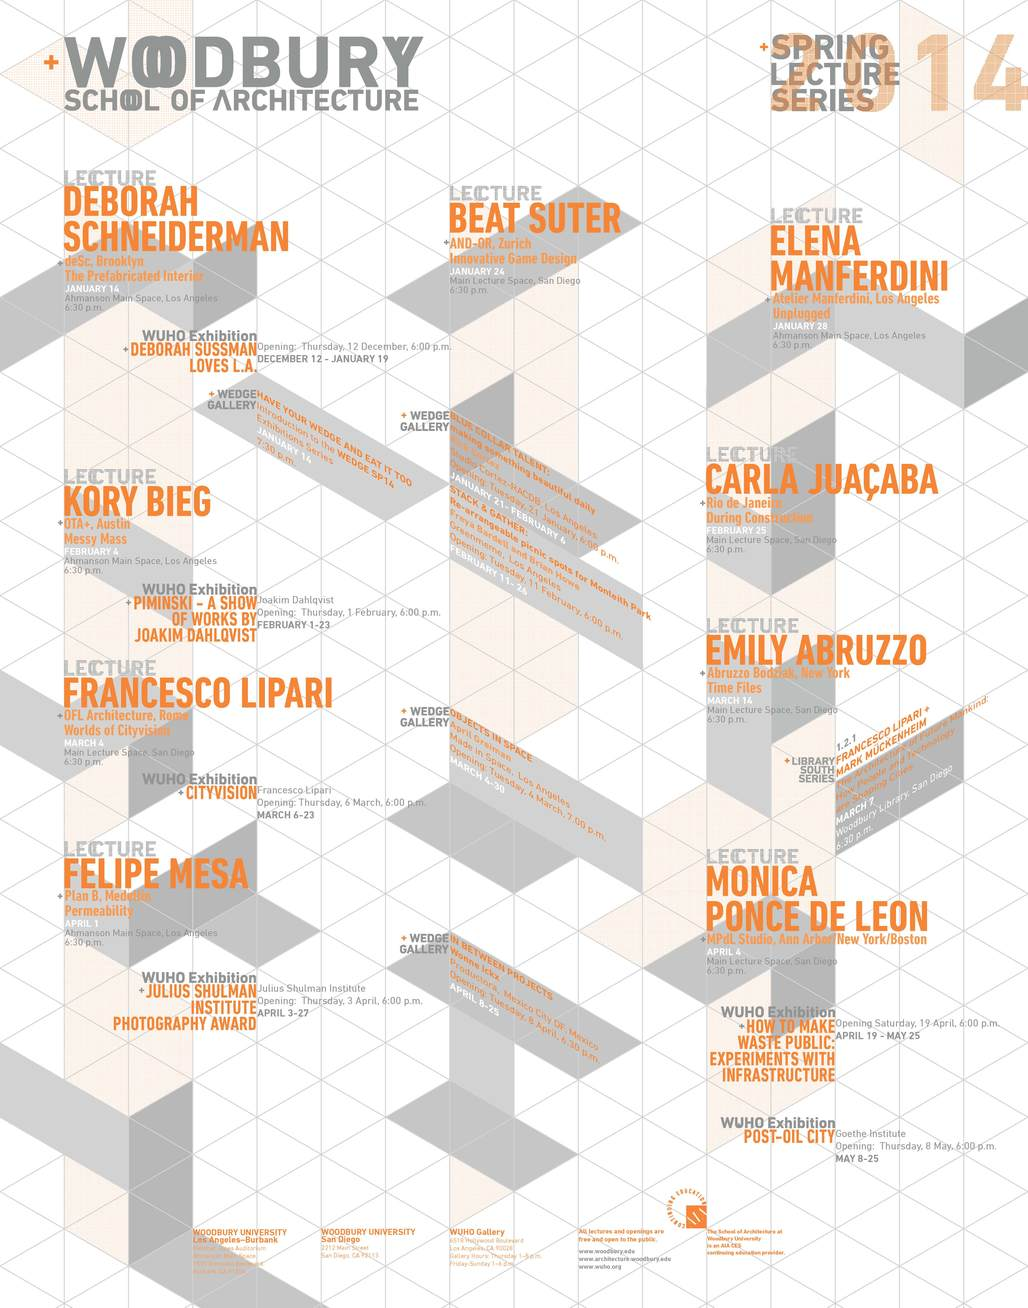 Woodbury Architecture Spring '14 Lecture Series. Image courtesy of Woodbury School of Architecture.